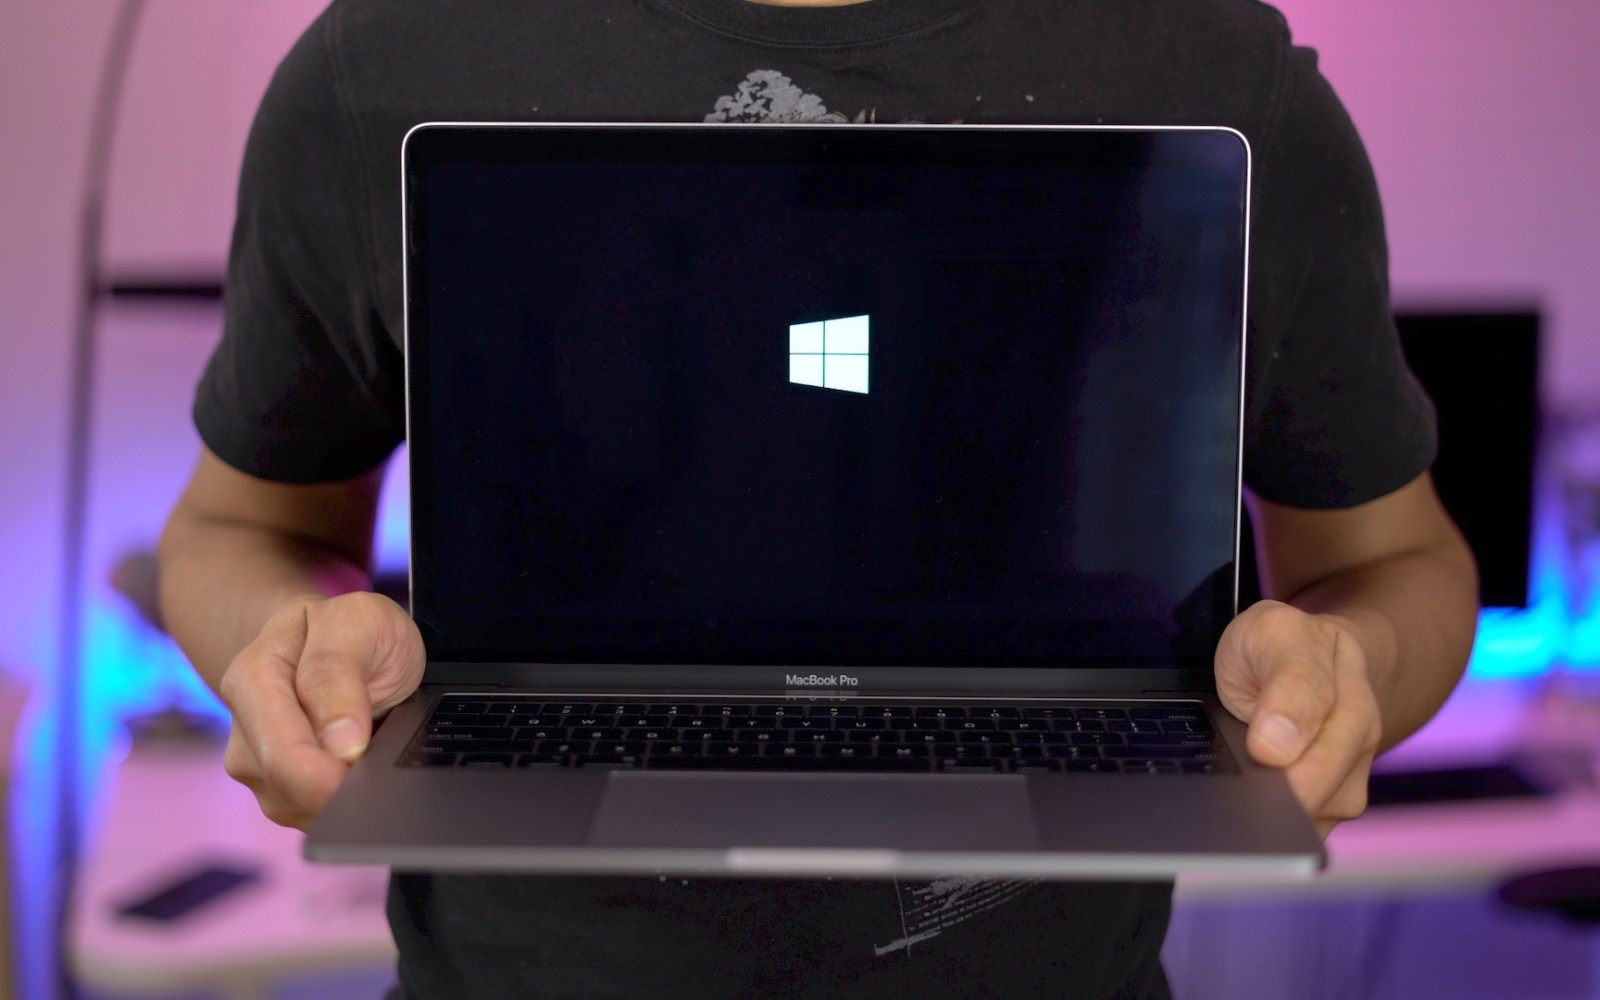 How to install Windows 10 on your Mac using Boot Camp Assistant [Video]